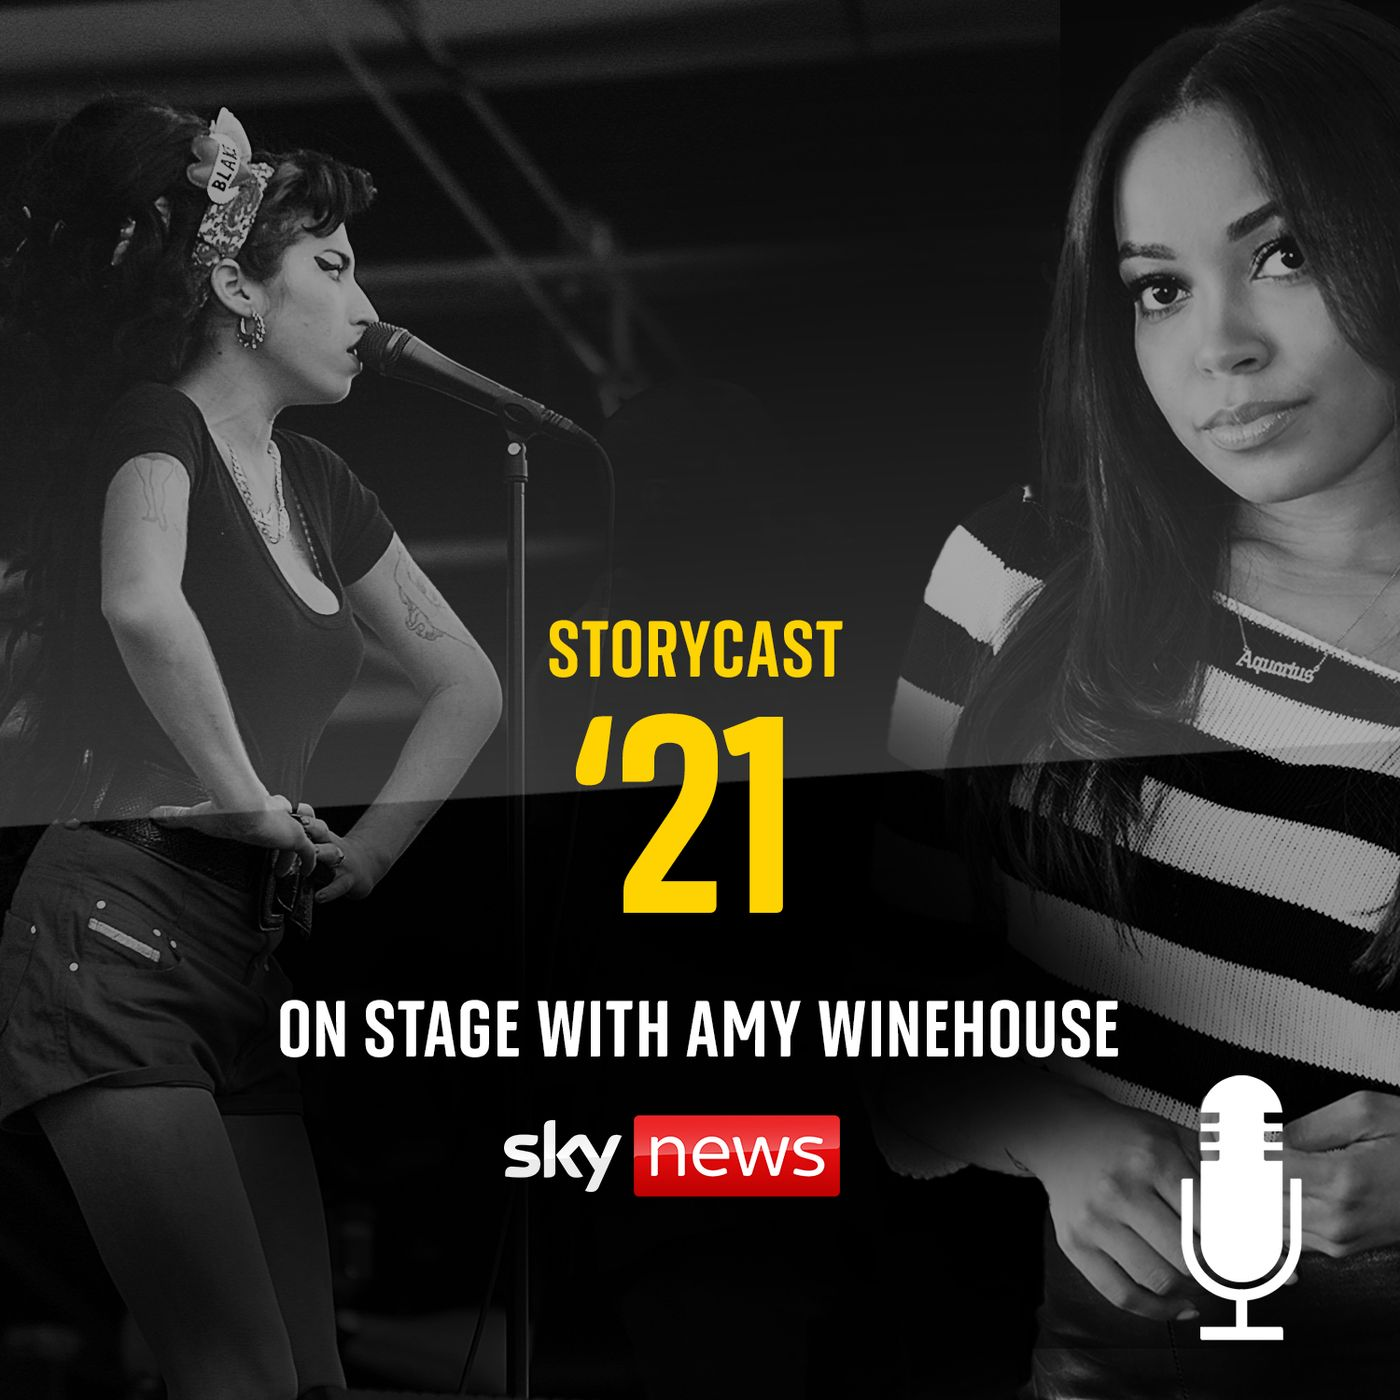 StoryCast '21: EP 10/21 On Stage with Amy Winehouse